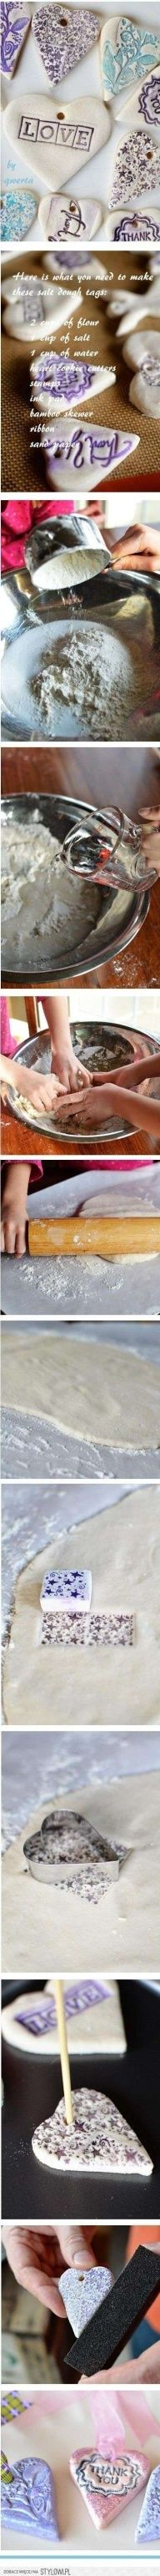 salt dough tags